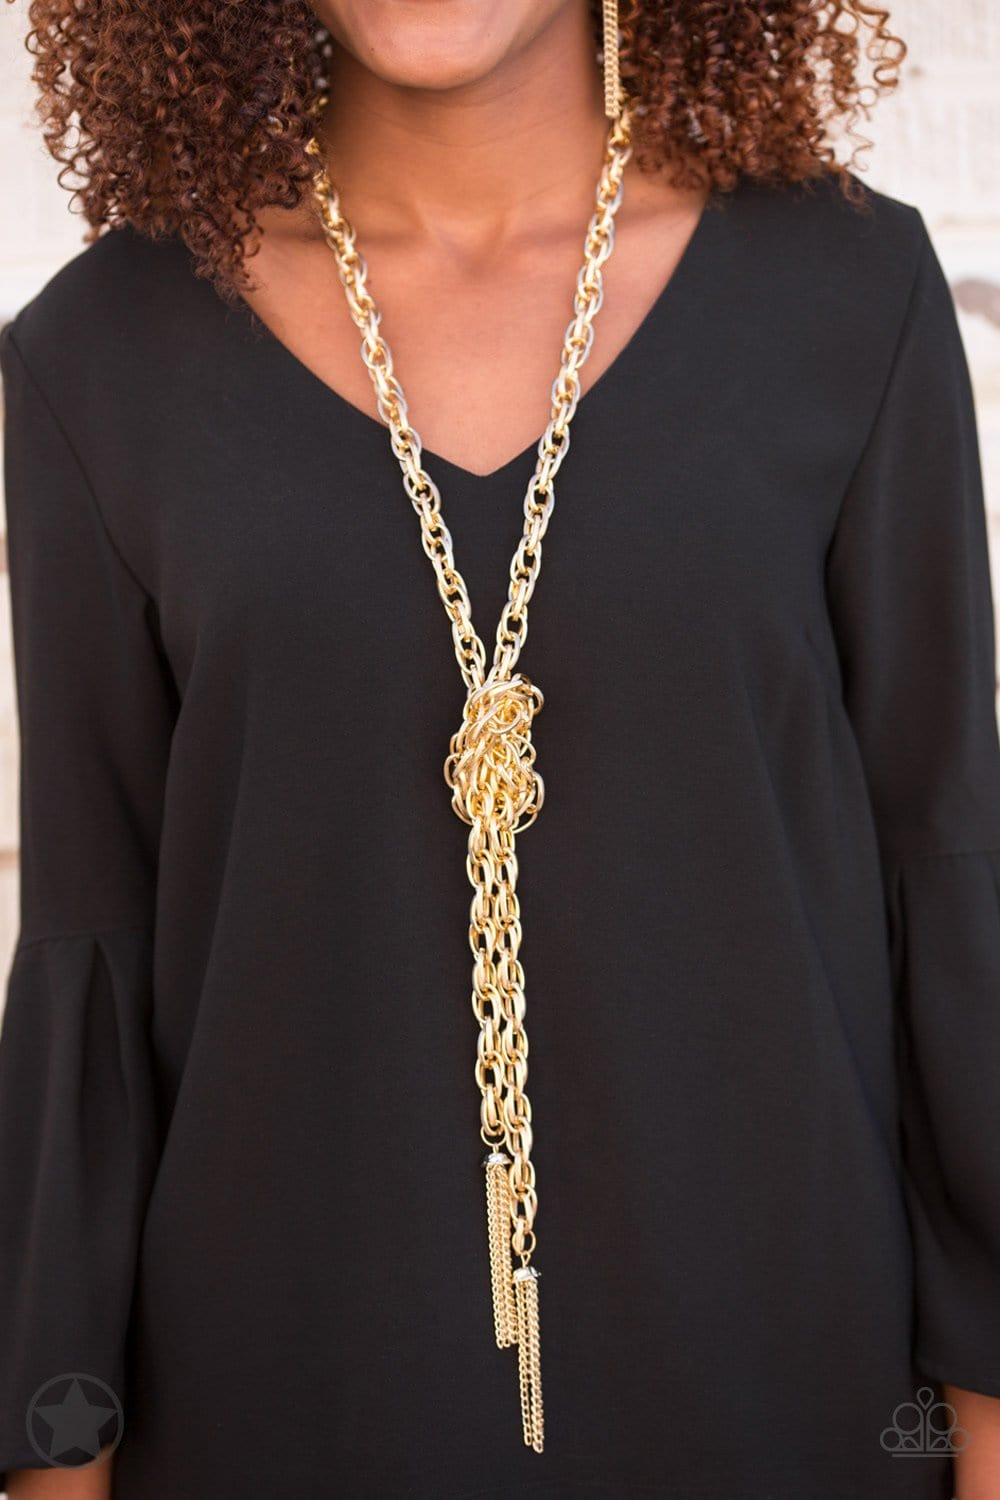 Paparazzi BLOCKBUSTERS: SCARFed for Attention - Gold Necklace - Jewels N' Thingz Boutique